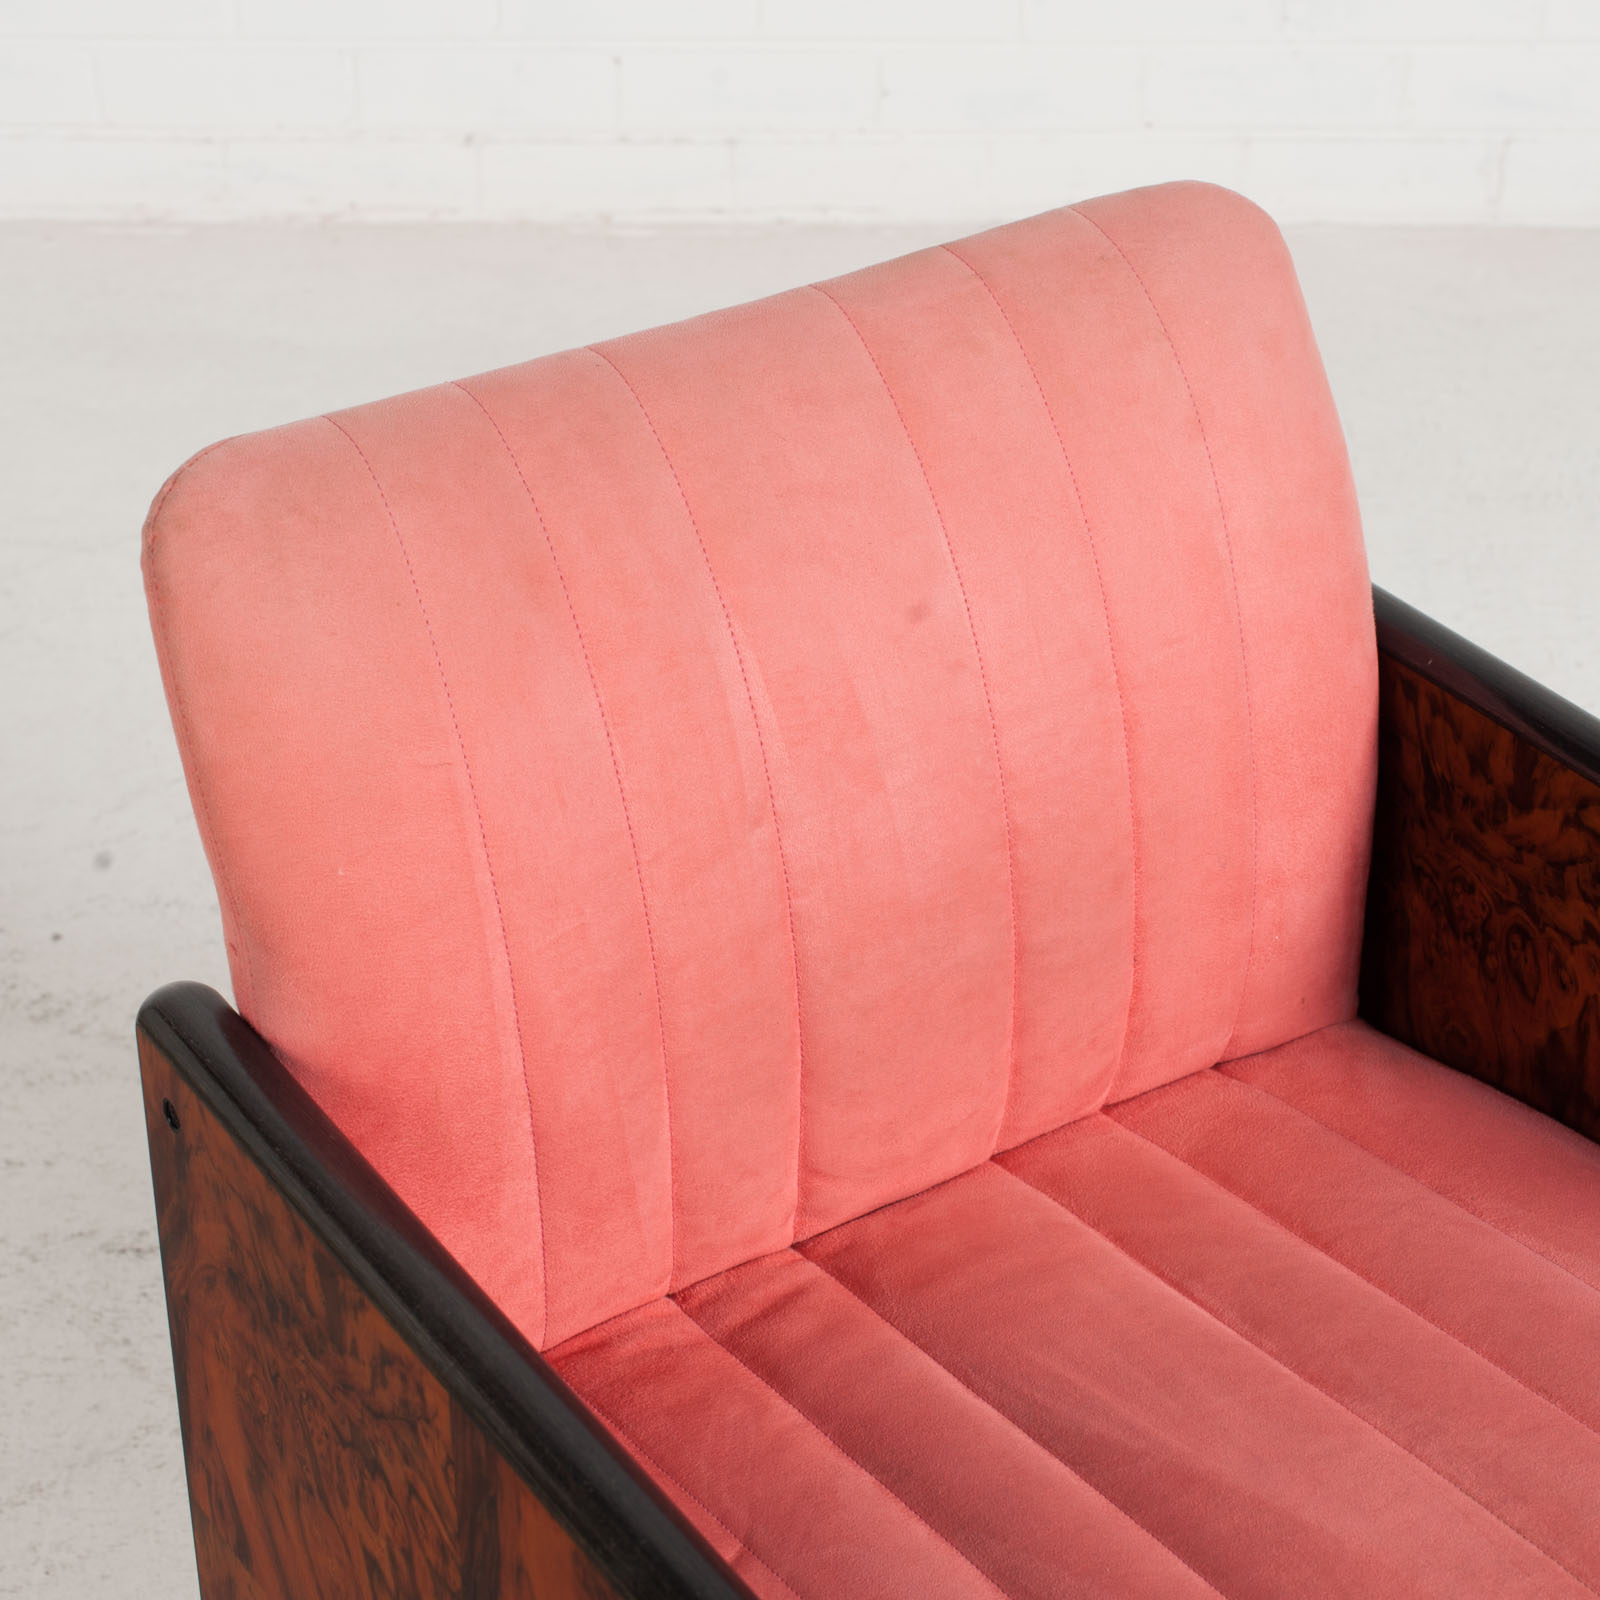 Set Of 8 Chairs By Kazuhide Takahama In Pink Upholstery 1950s Italy 05